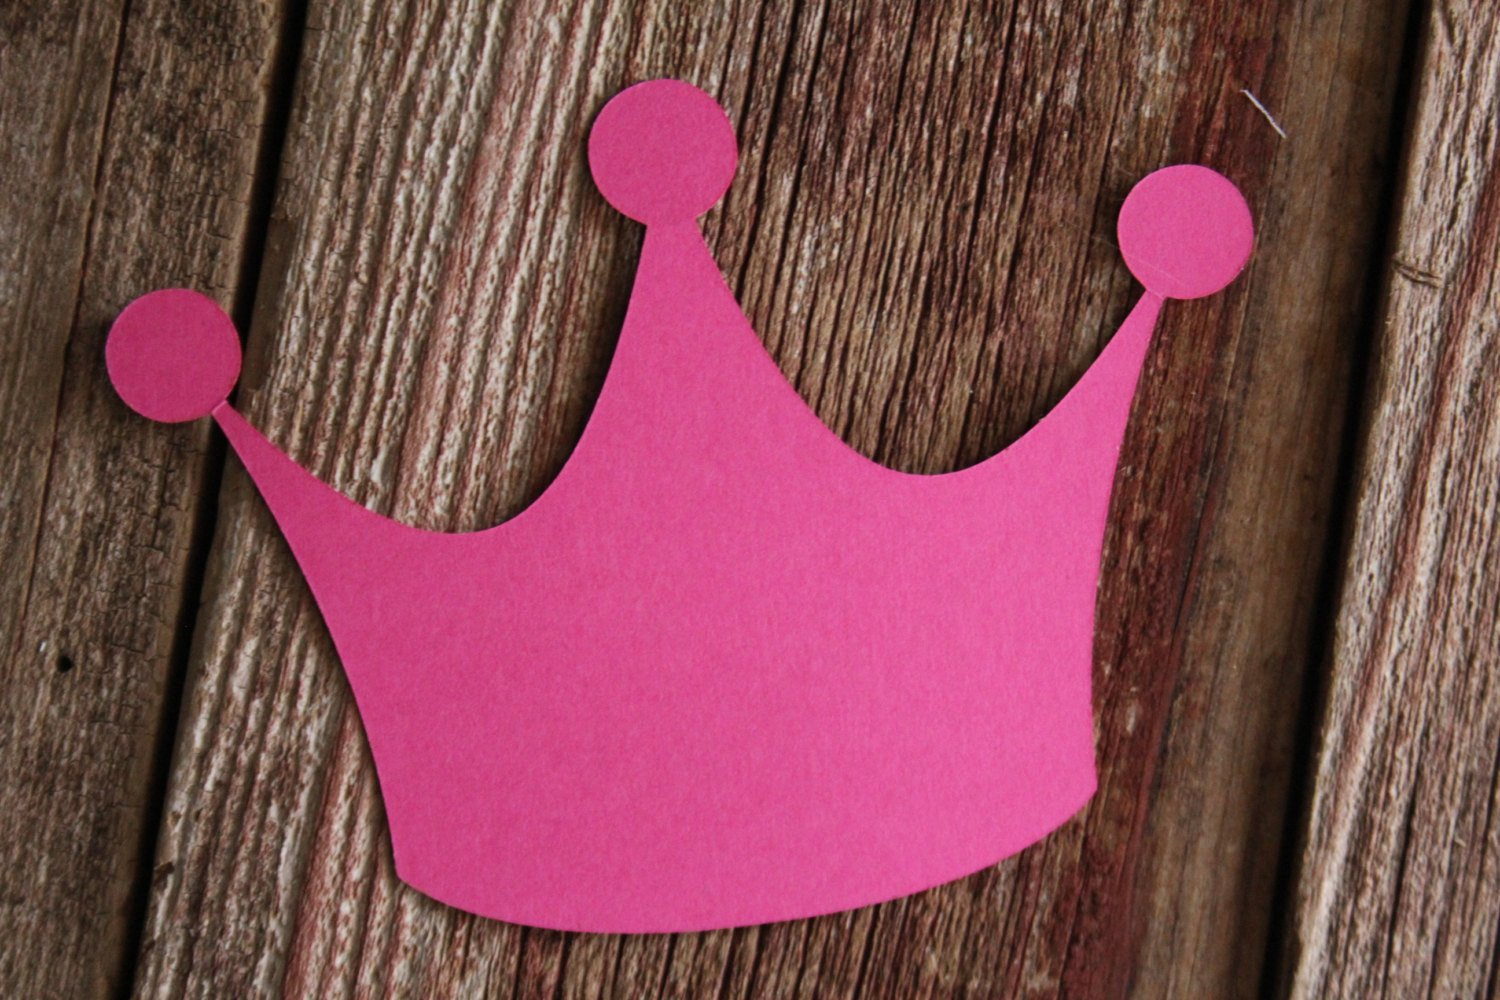 Princess Crown Cut Out Large Paper Crown Crown Cut Out Princess Crown Paper